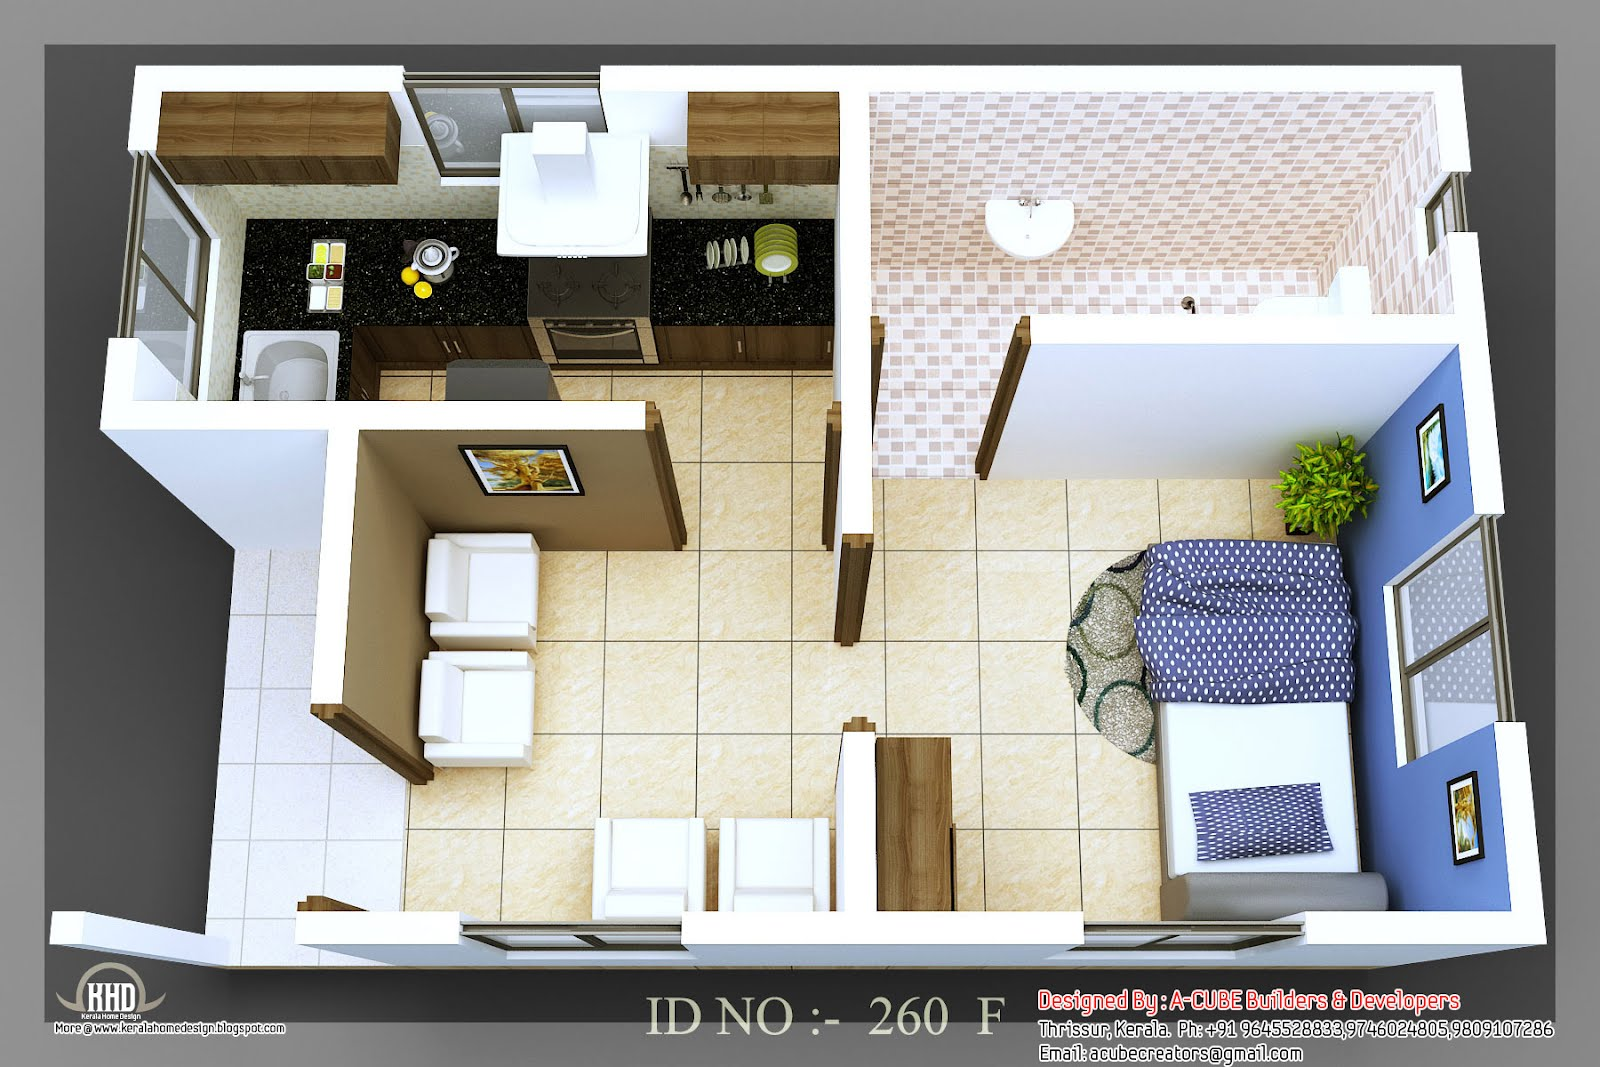 3d isometric views of small house plans home appliance for Design small house pictures